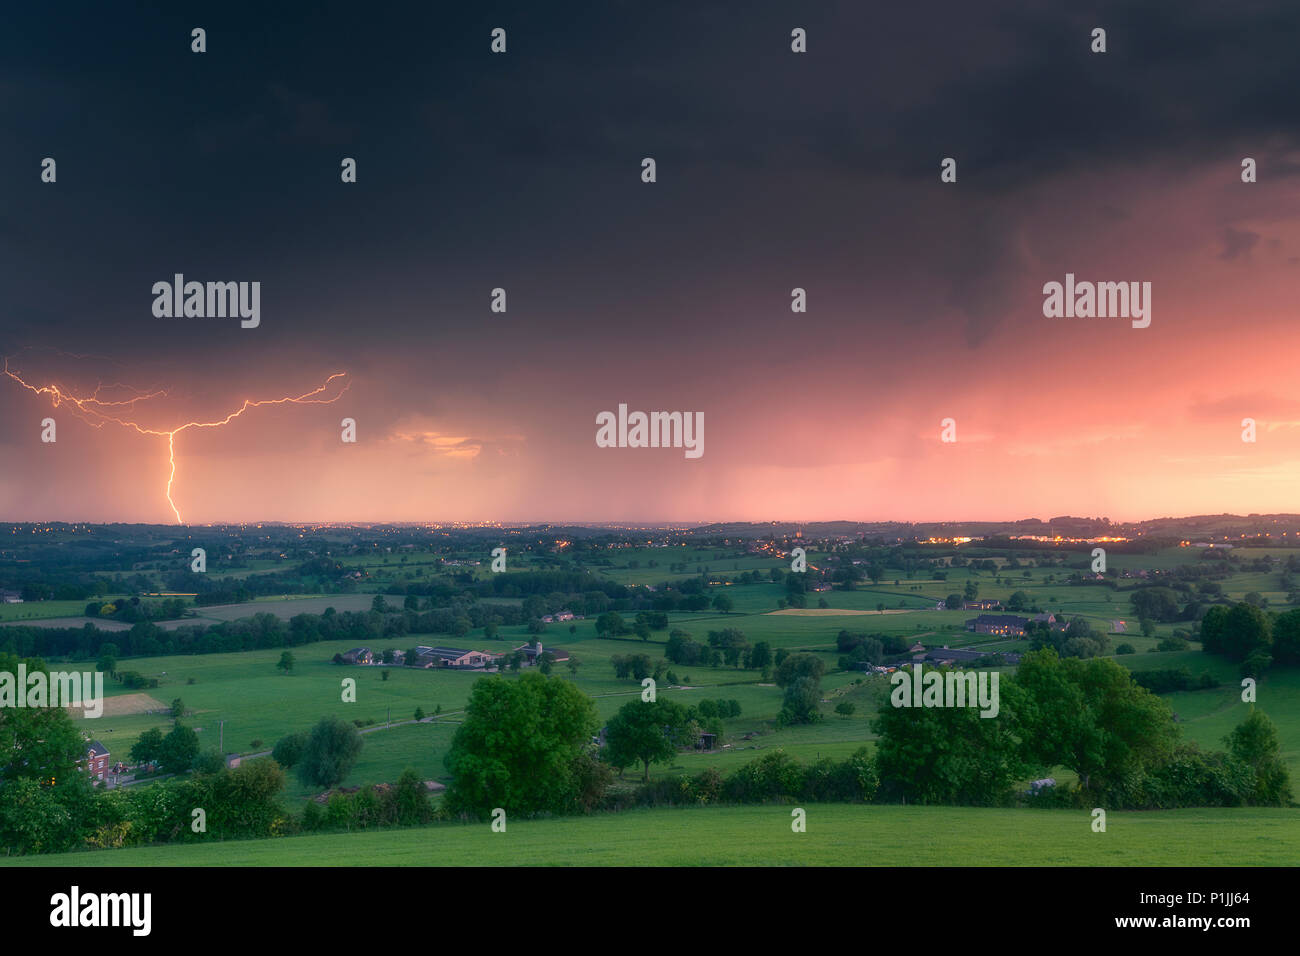 ground lightning stock photos ground lightning stock images alamy